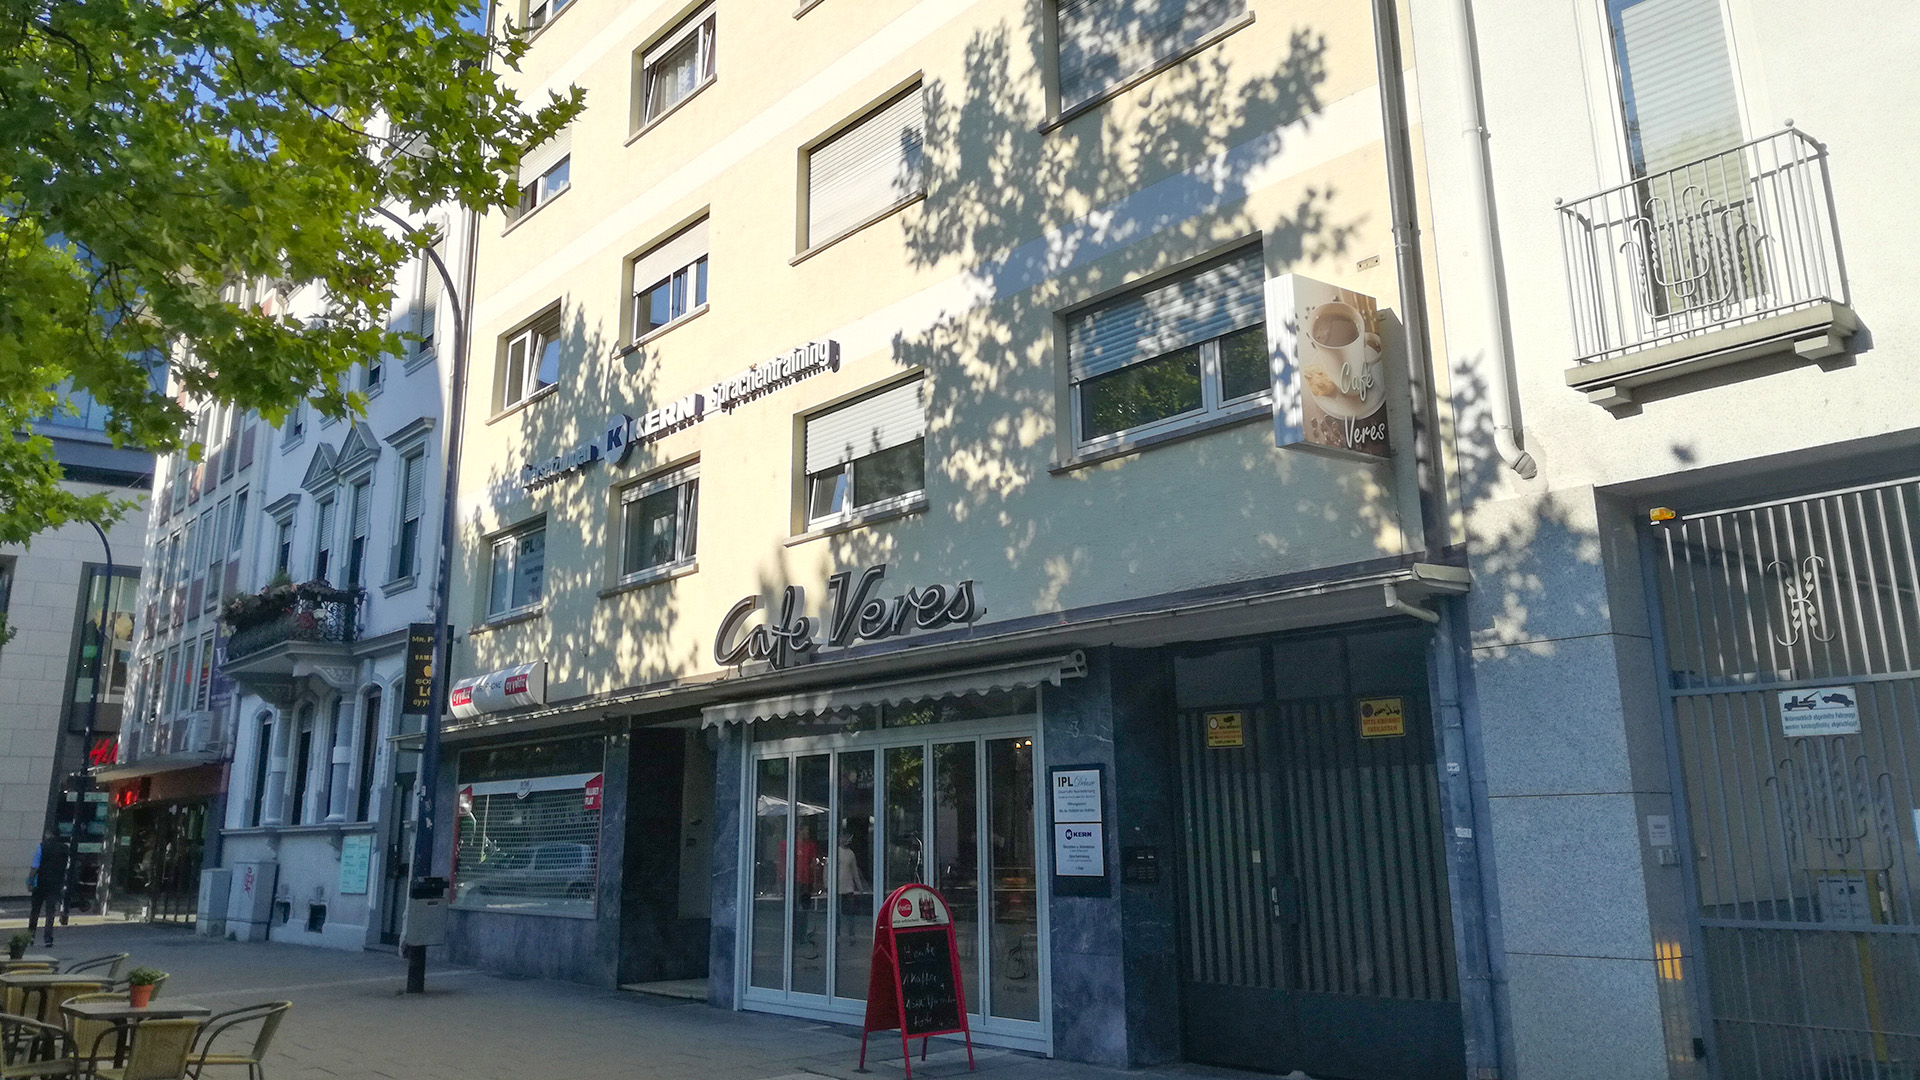 Exterior view of the KERN language school Offenbach am Main